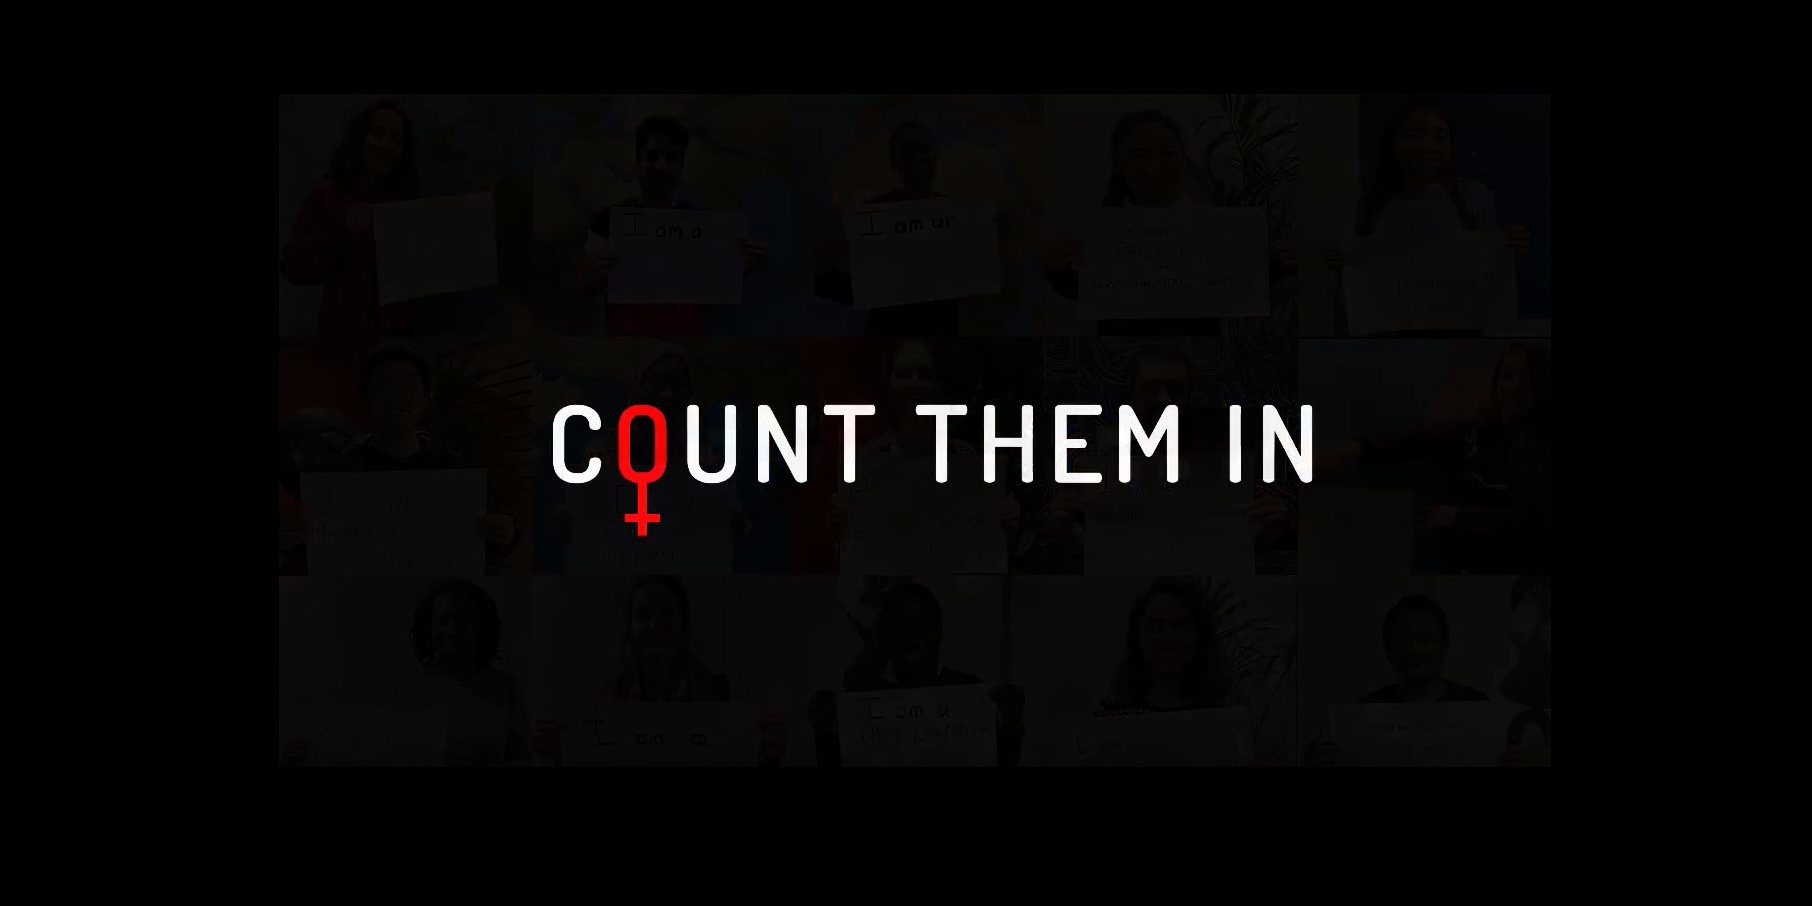 count them in